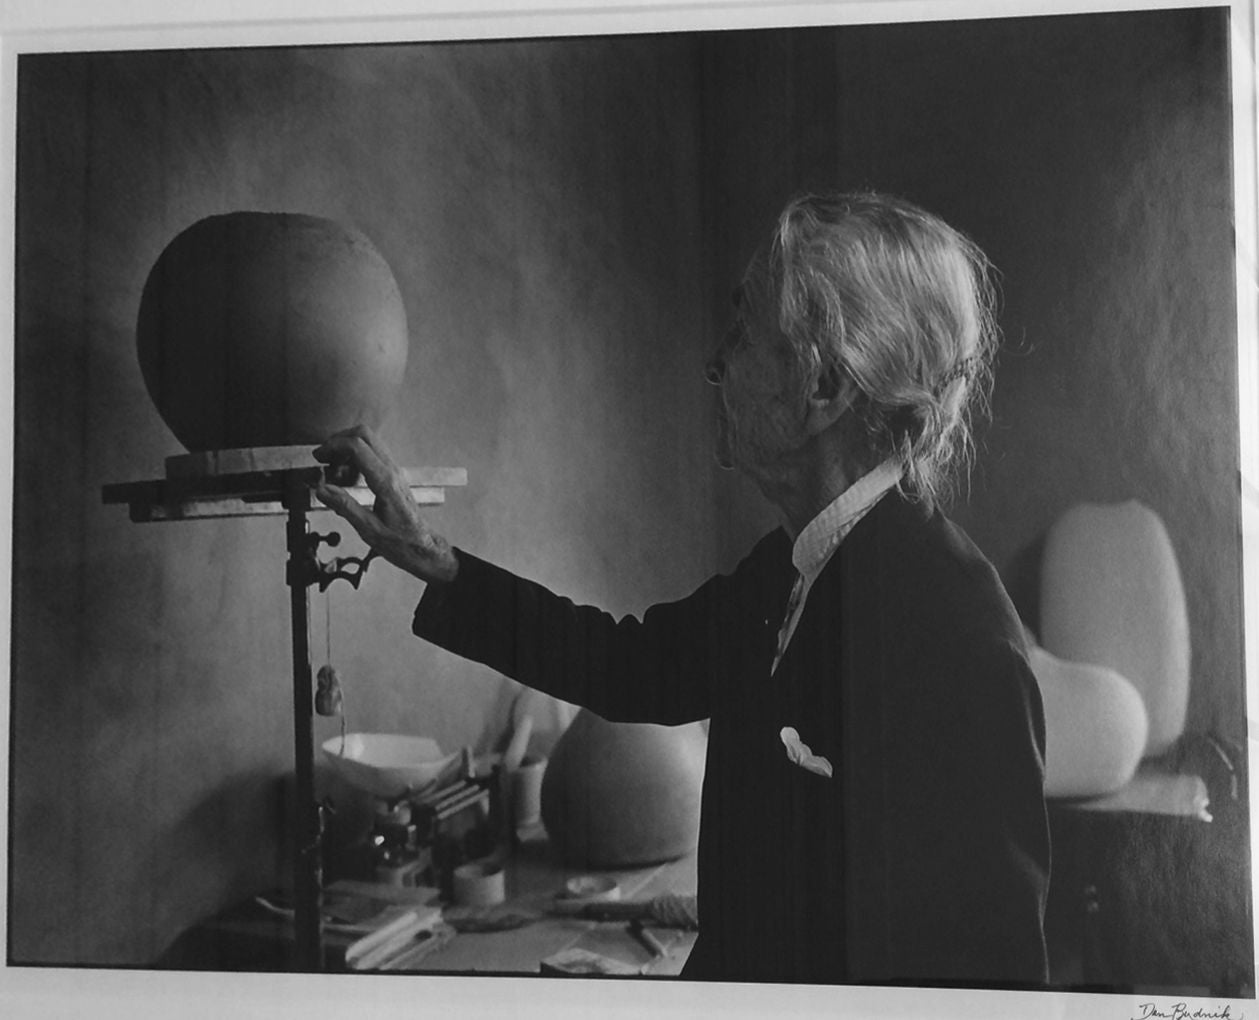 Georgia O'Keeffe (1887-1986), with pottery on stand, silver print on Ilford Paper Default Title